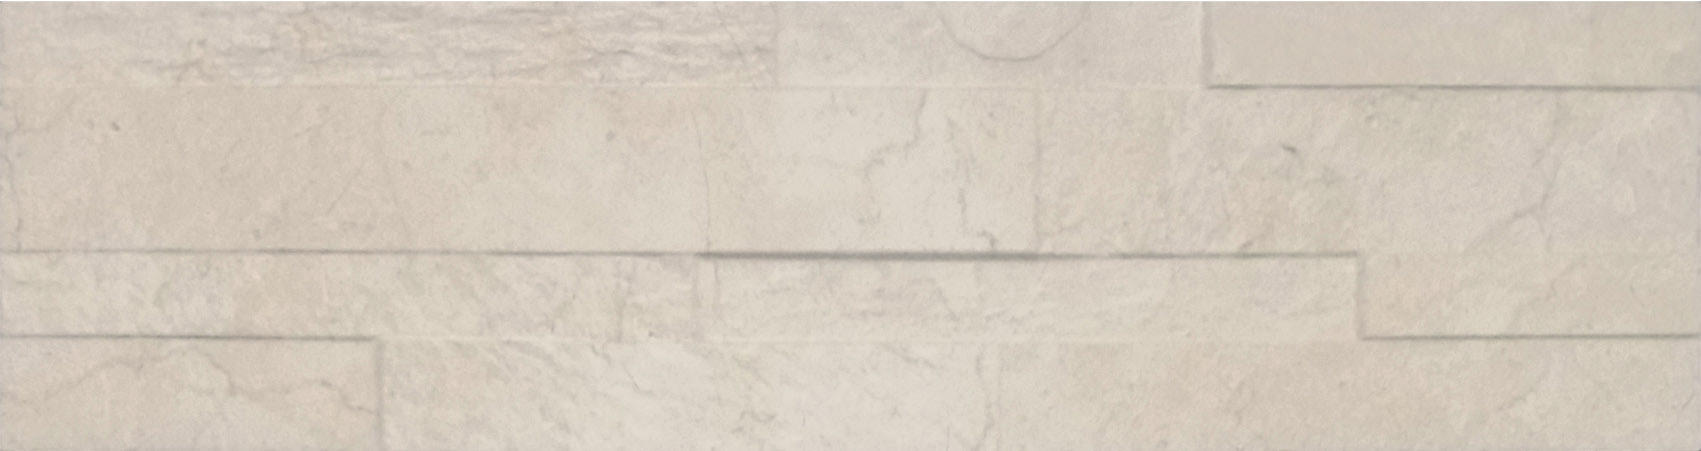 Tiffany Beige Ceramic Tiles From Rondine Architonic